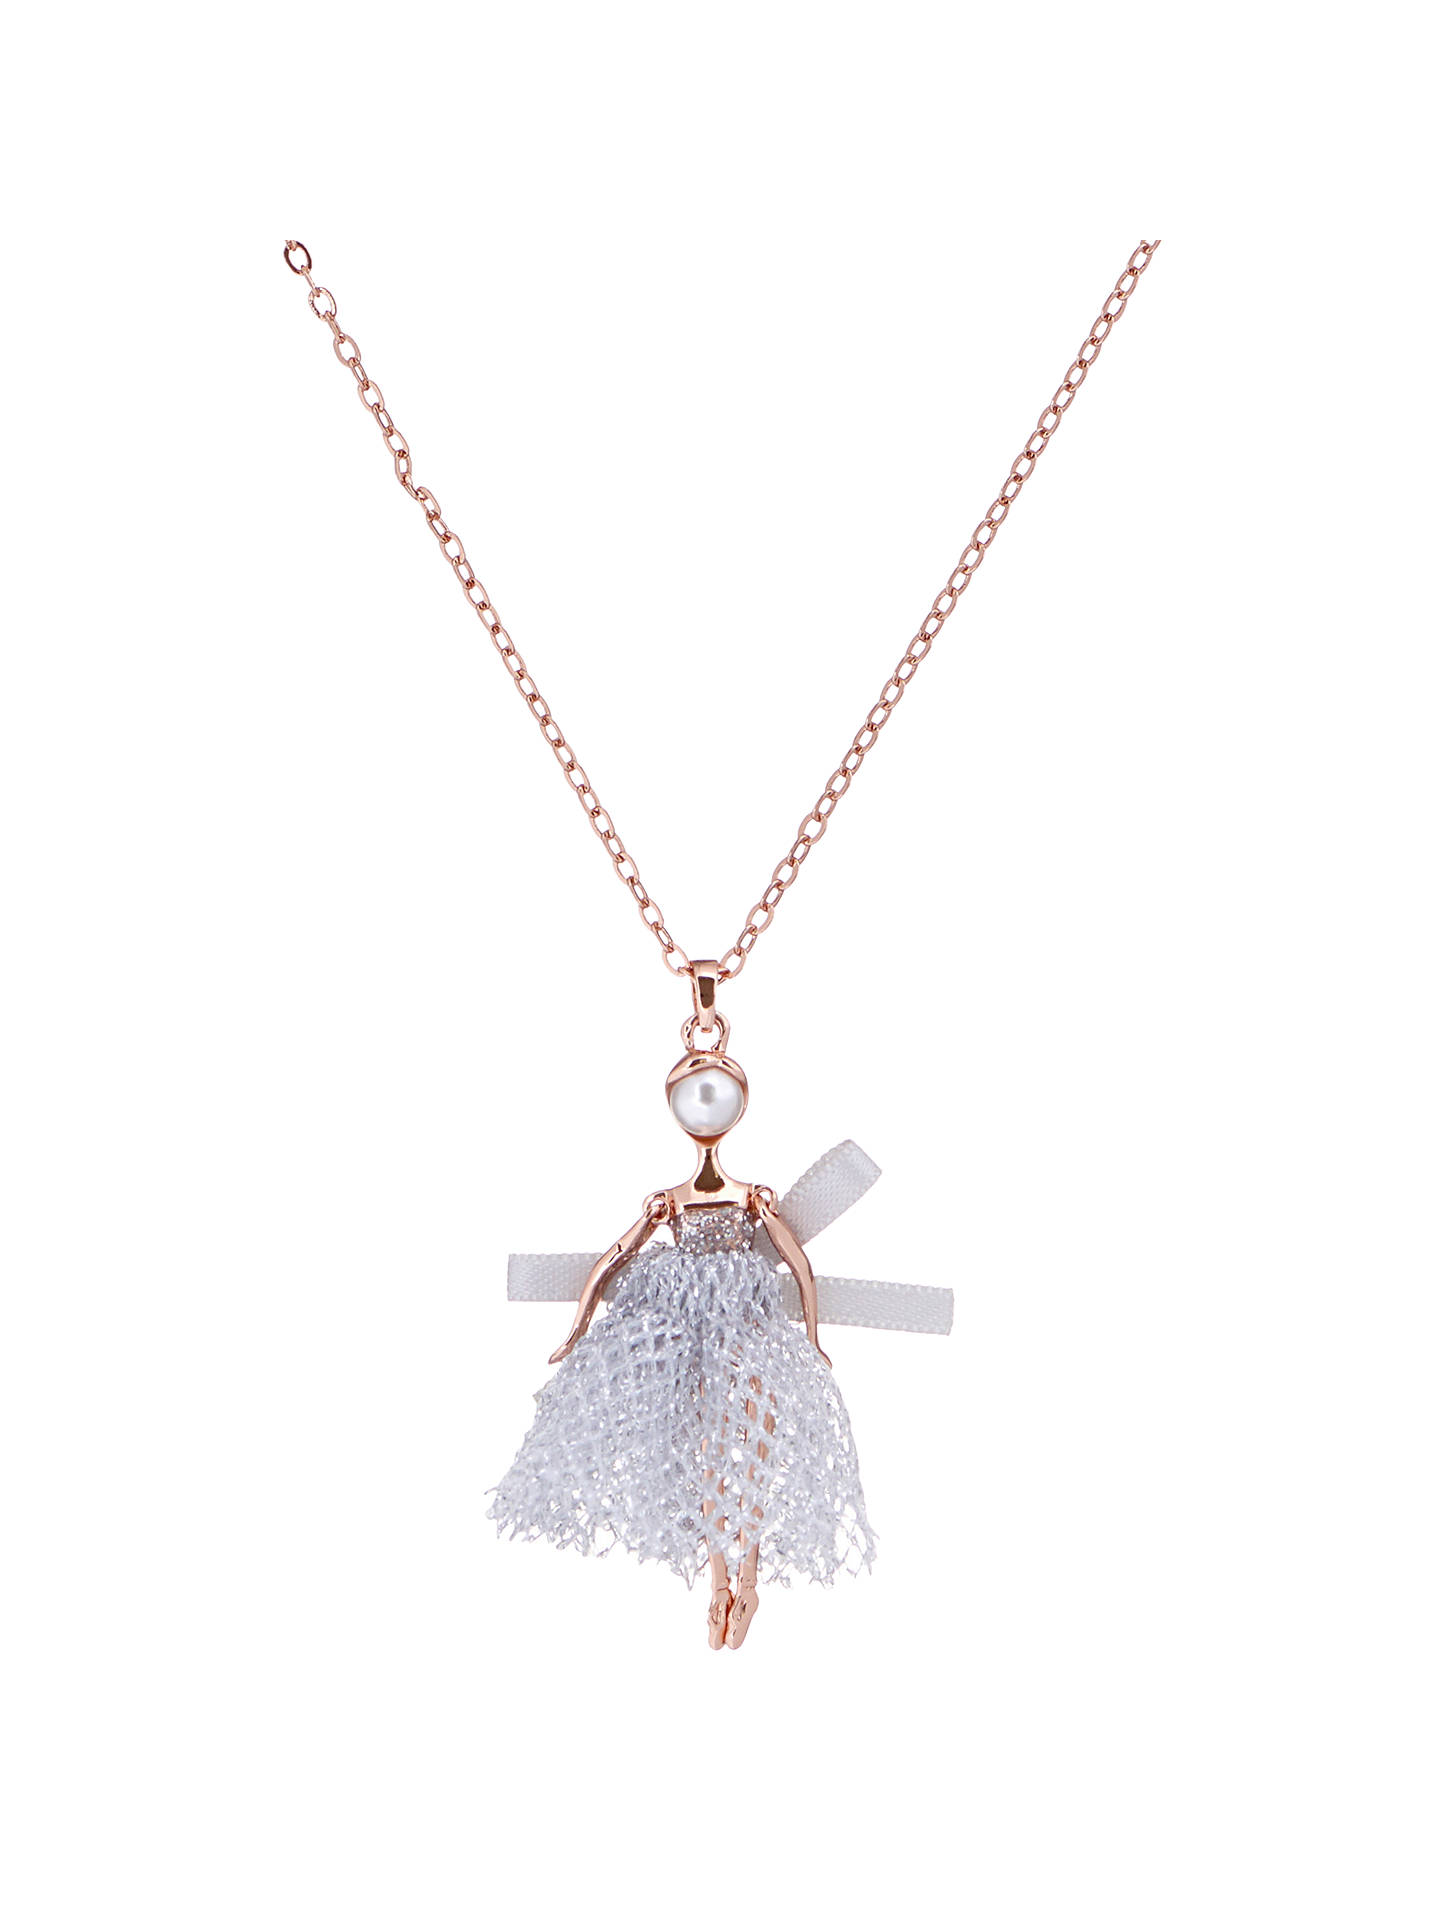 Ted baker carabel mini ballerina pendant at john lewis partners buyted baker carabel mini ballerina pendant rose goldgrey online at johnlewis aloadofball Images